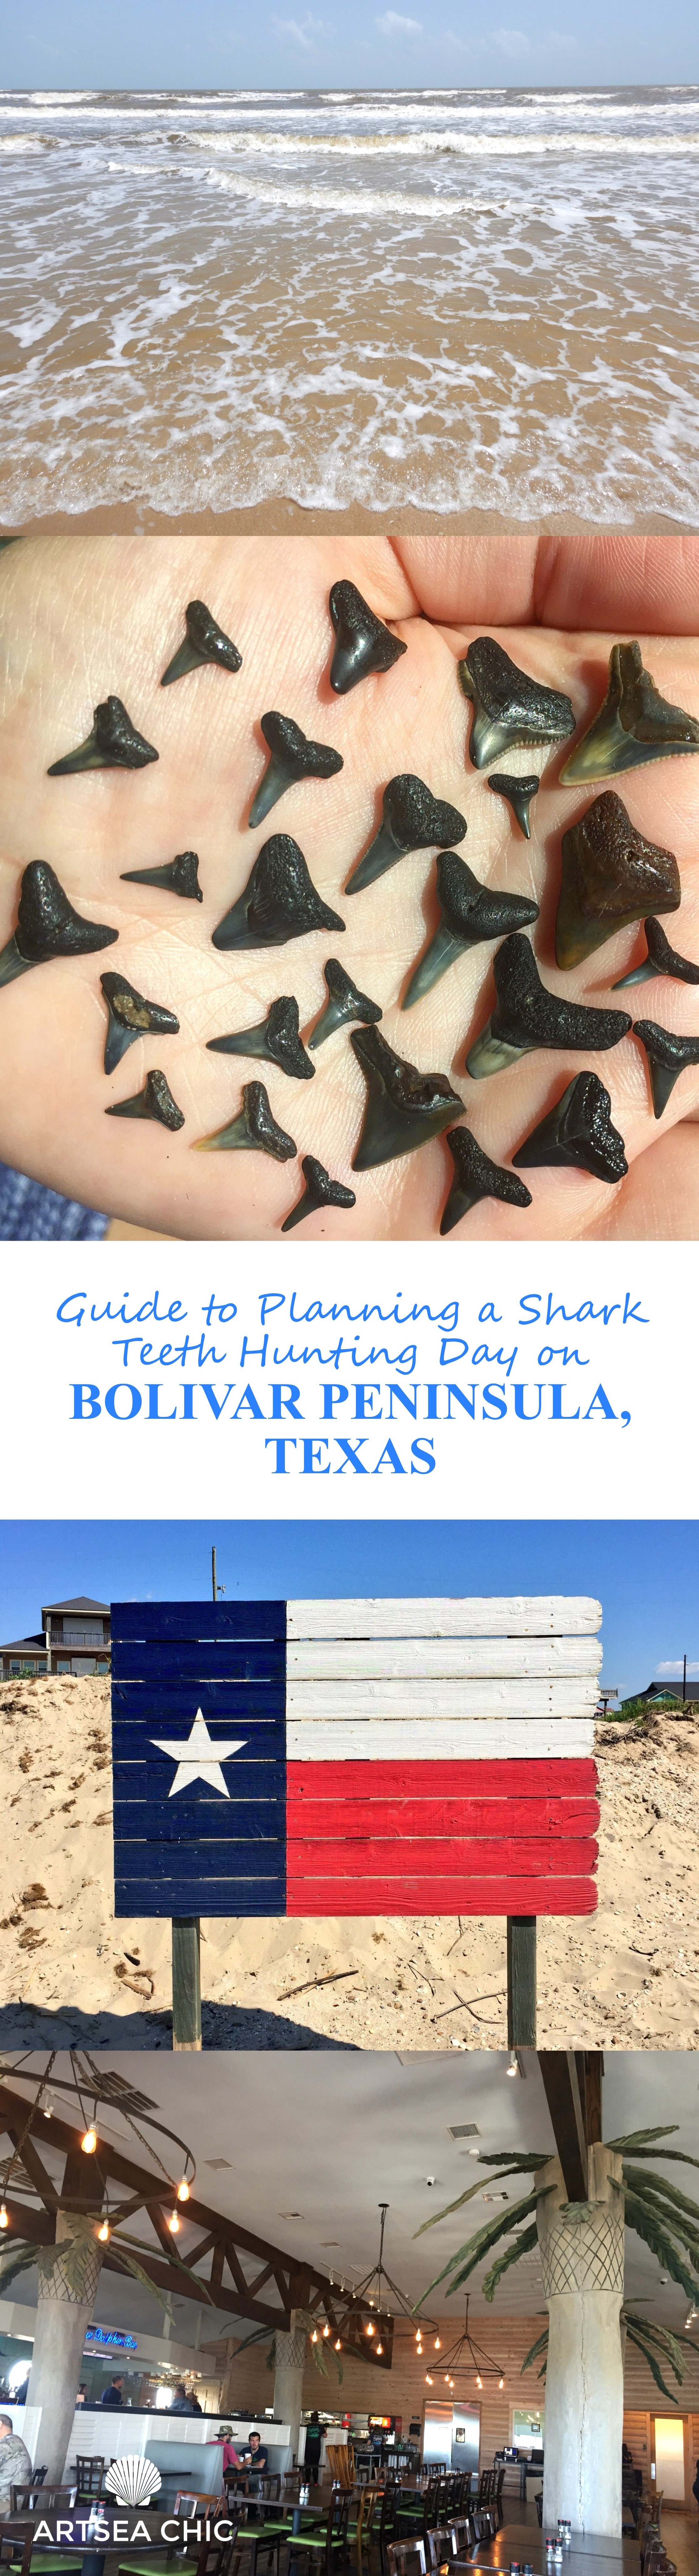 Guide to Planning a Shark Teeth Hunting Trip on Bolivar Peninsula.jpg